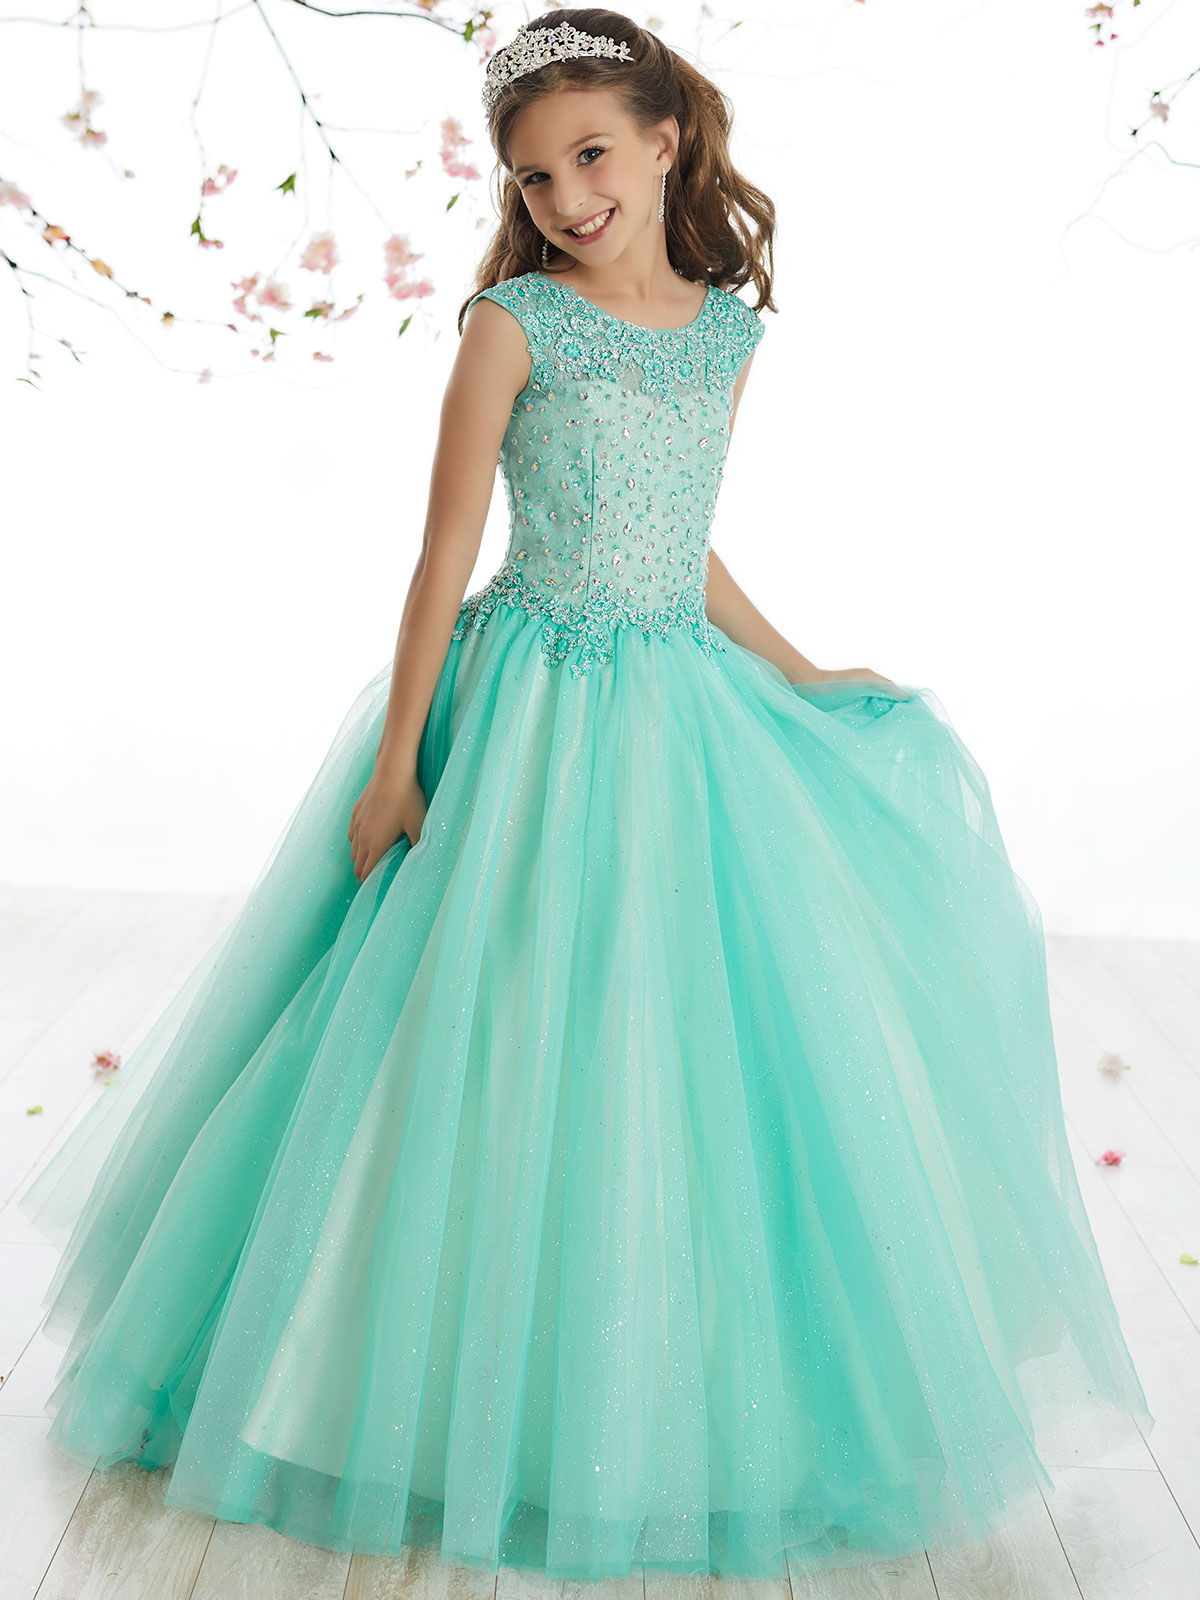 Tiffany Princess 13507 Scoop Neckline Ball Gown Dress|PageantDesigns.com